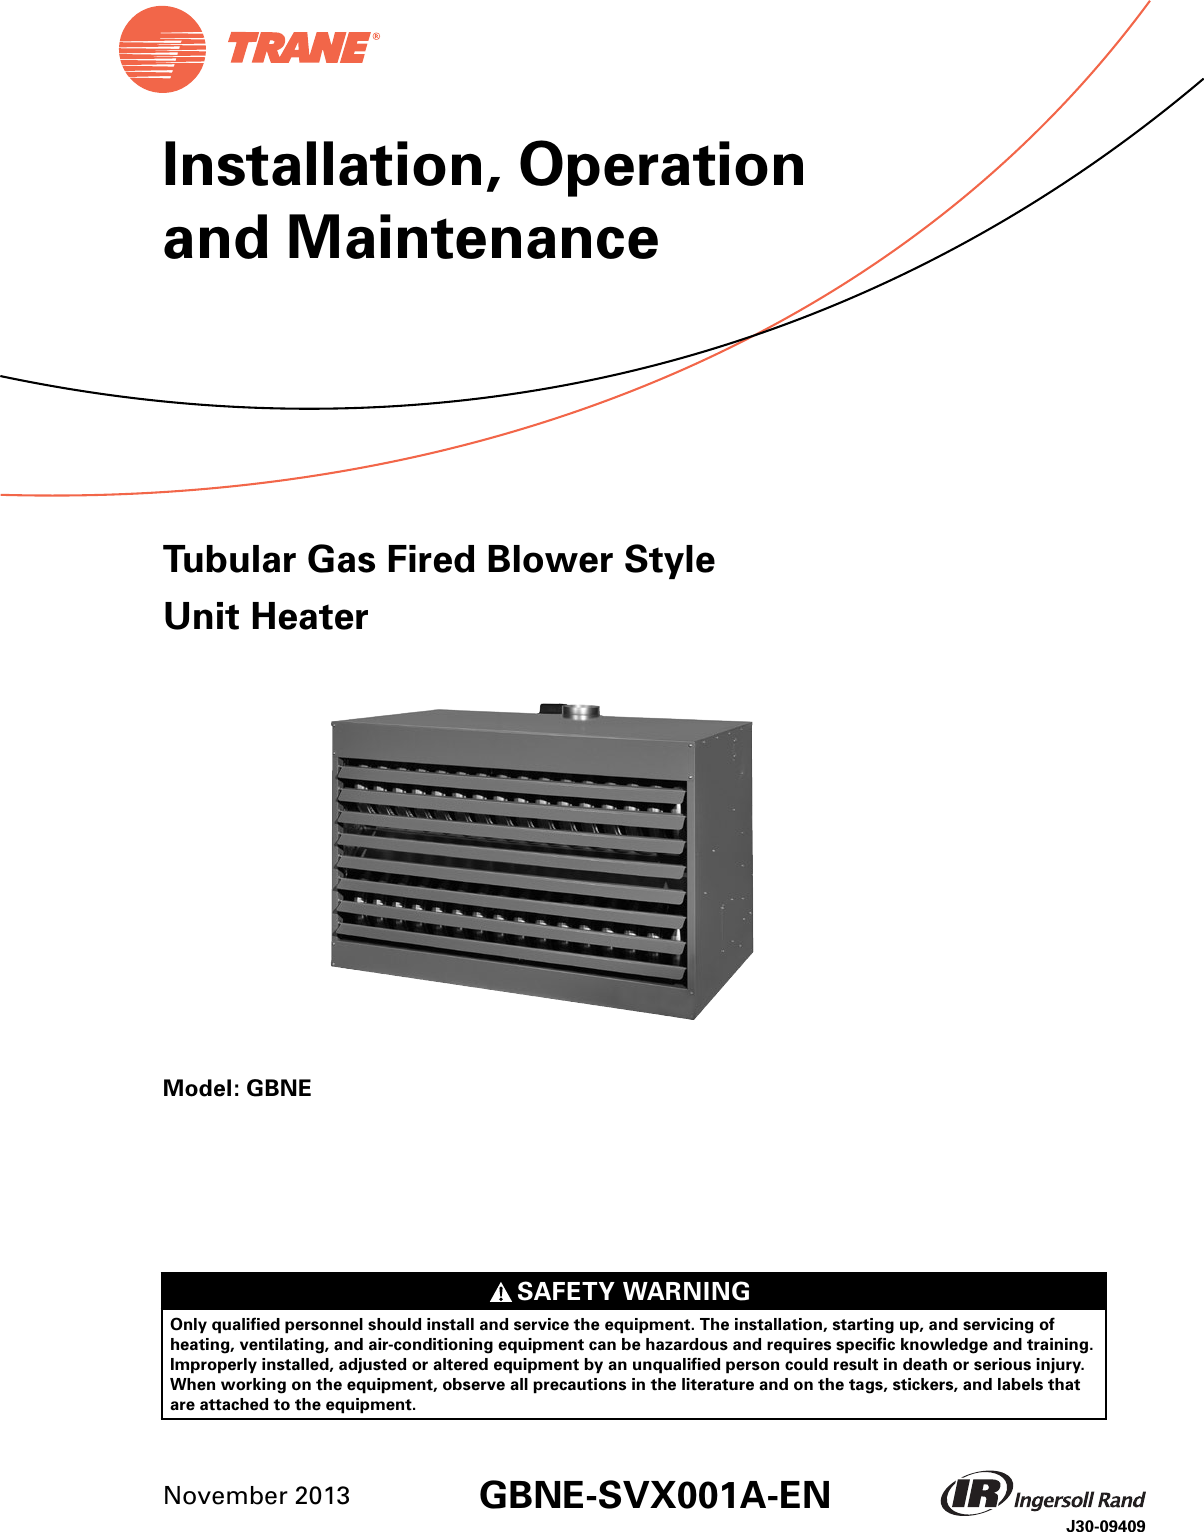 hight resolution of trane gas unit heaters installation and maintenance manual gbne svx001a en 11 05 2013 tubular fired blower style heater installation operation